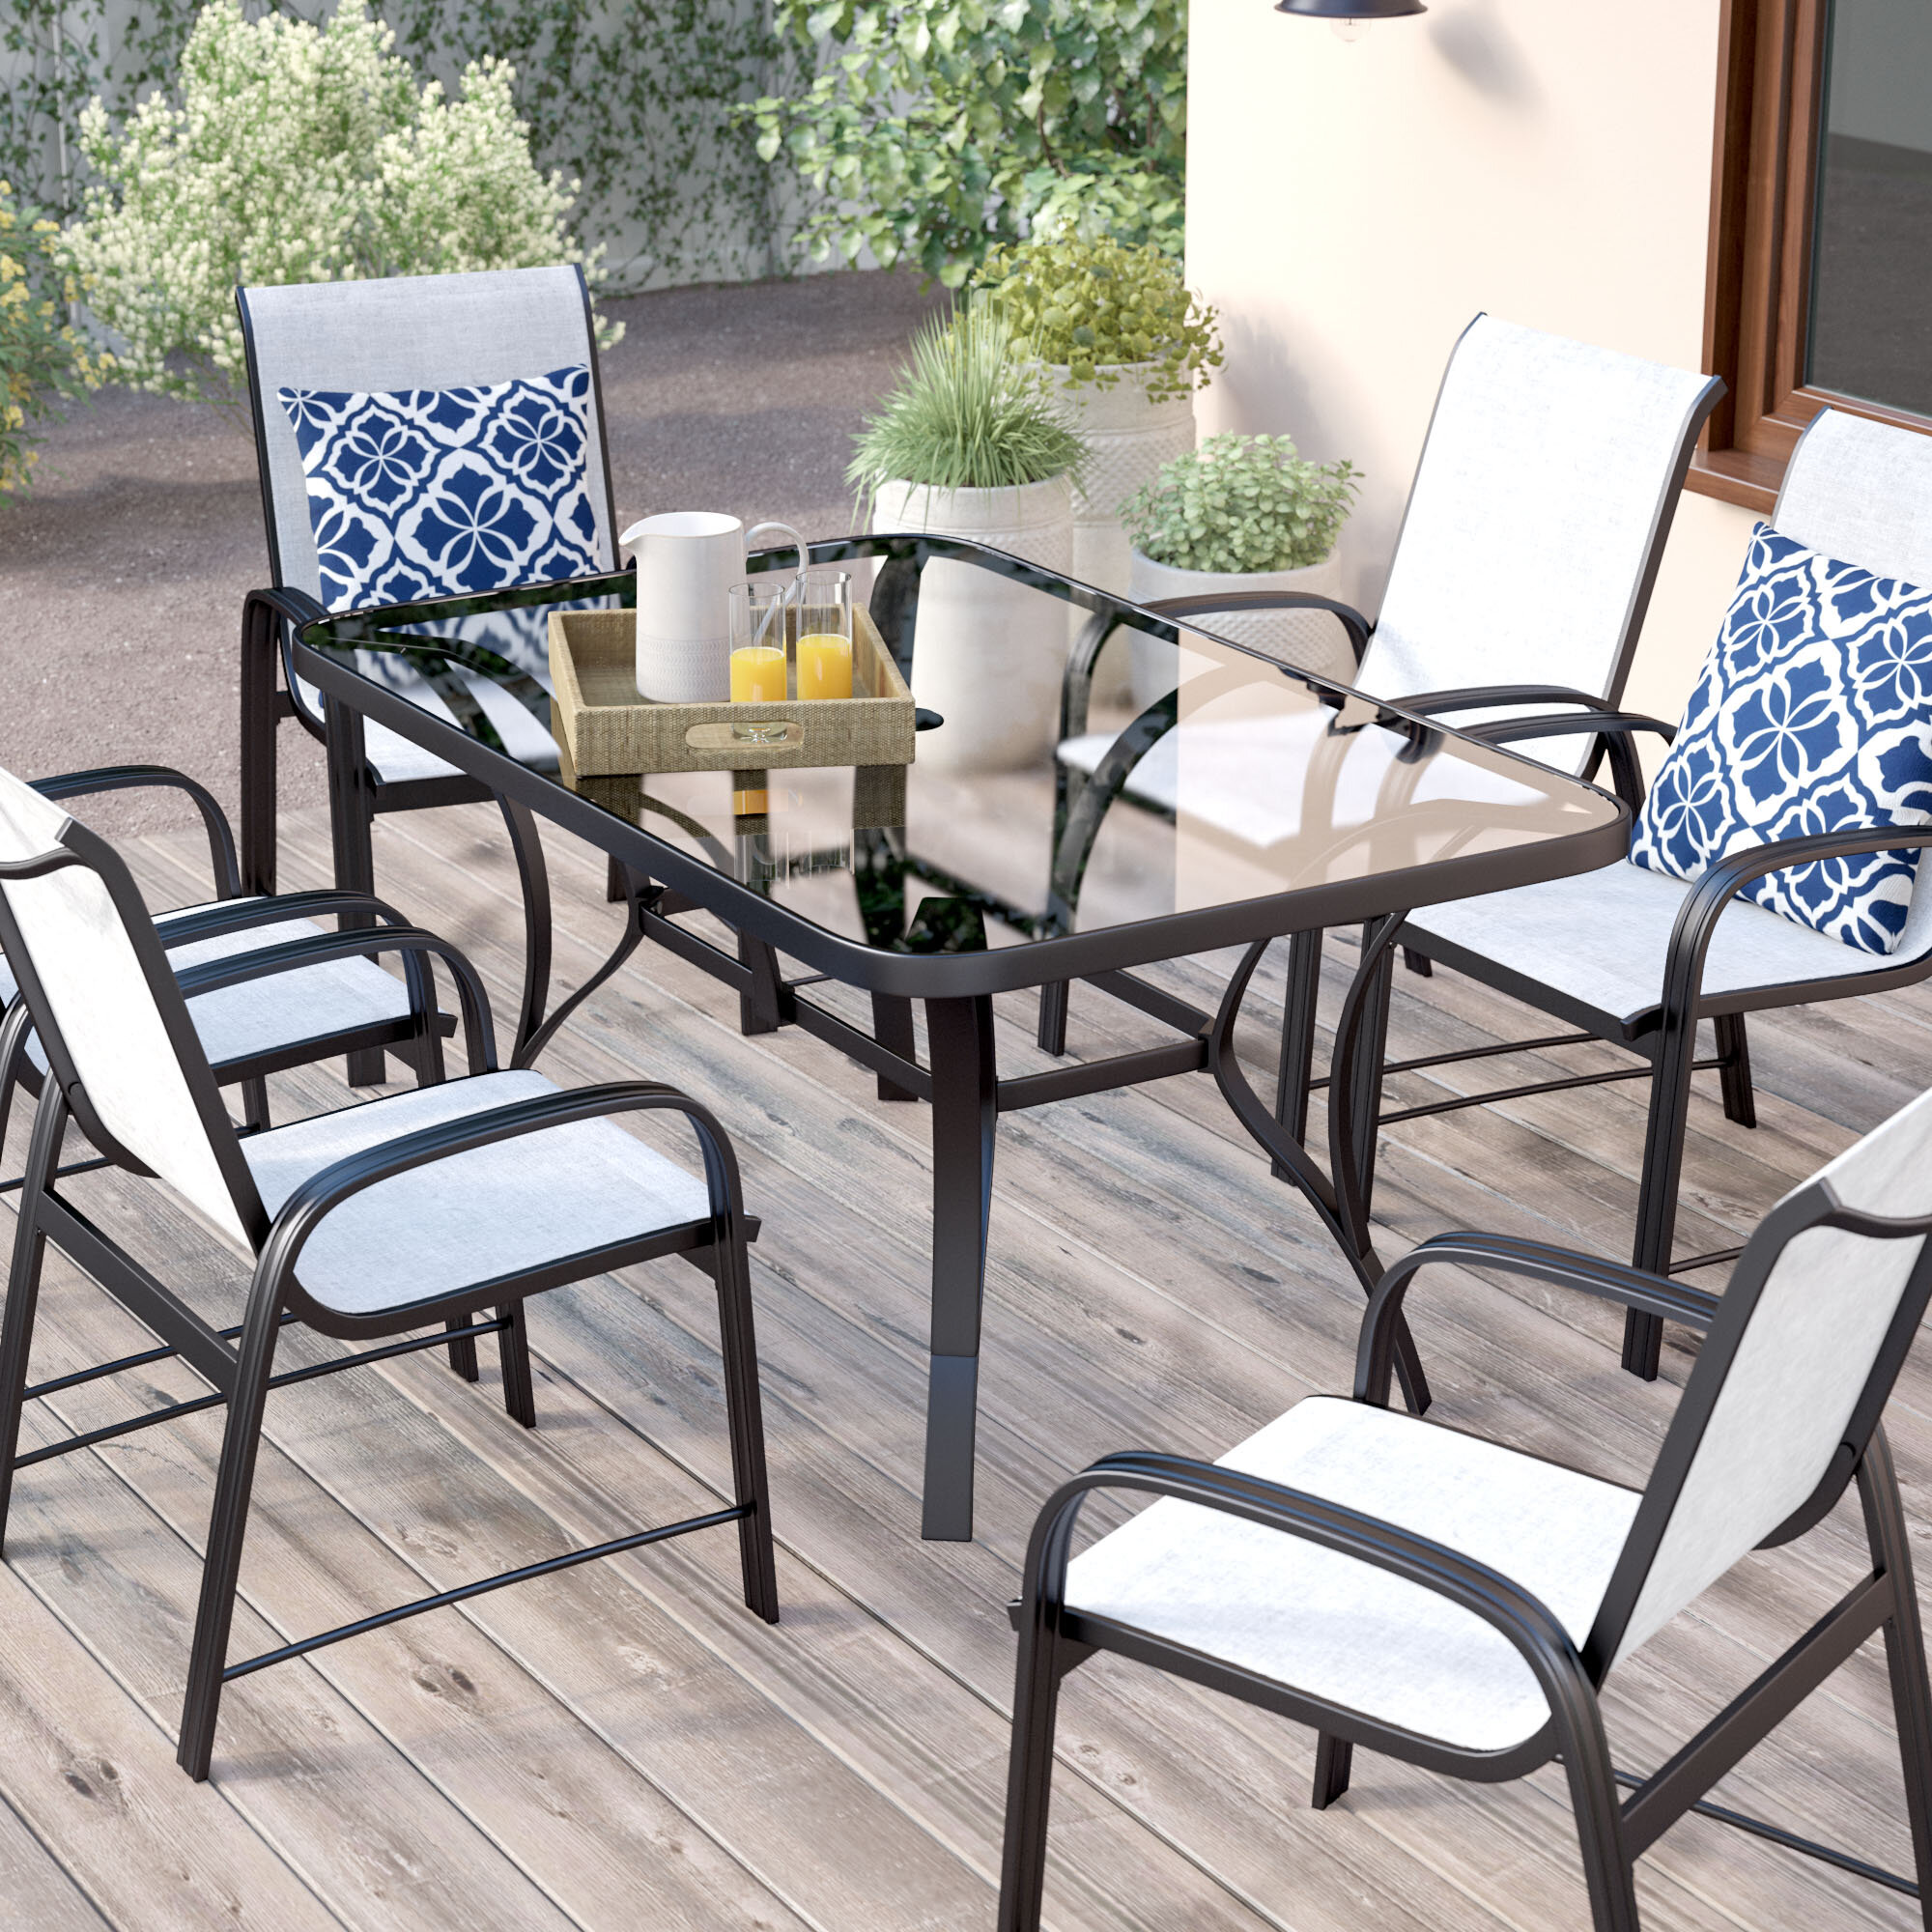 wrought category cast aluminum banner patio furniture product set dining